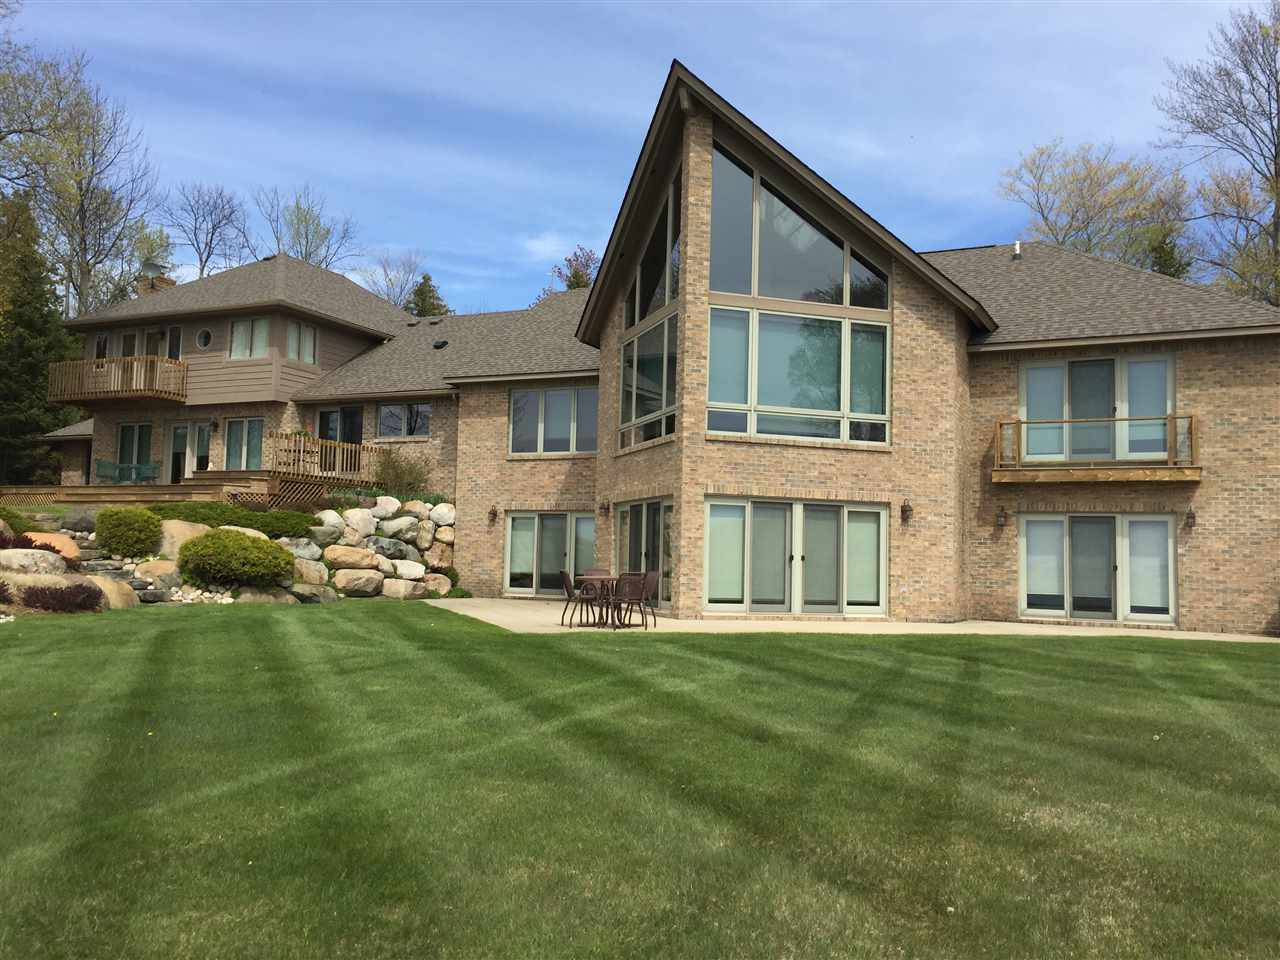 00141 Lake Shore Dr., Charlevoix, MI 49720